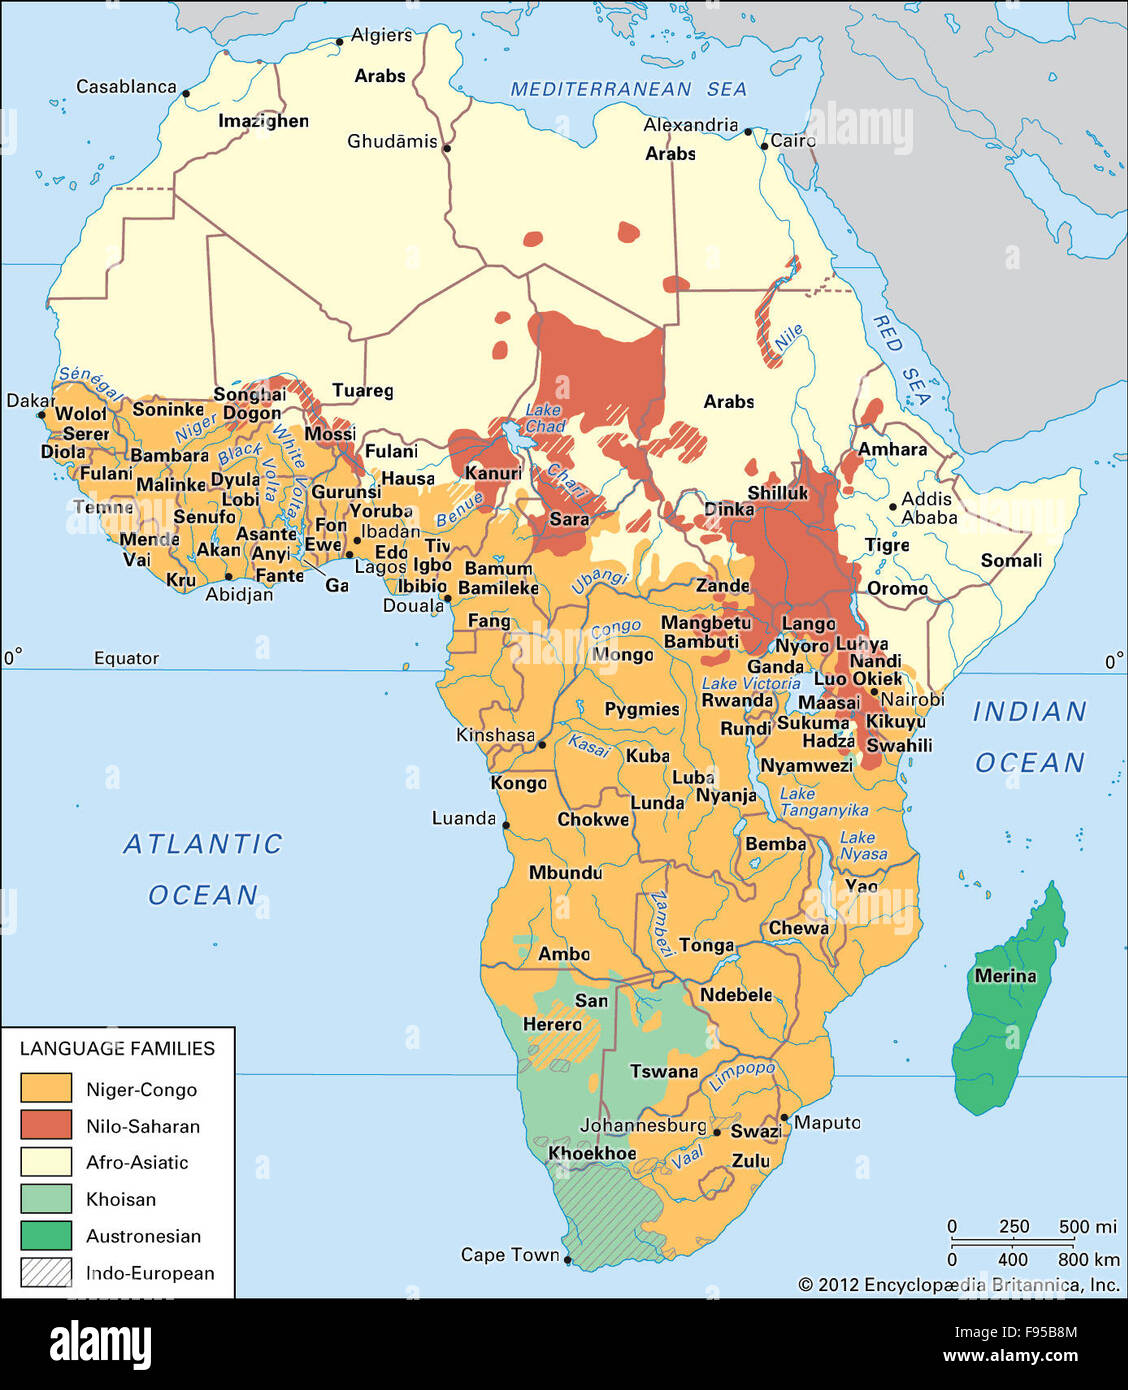 African Maps Stock Photos & African Maps Stock Images - Alamy